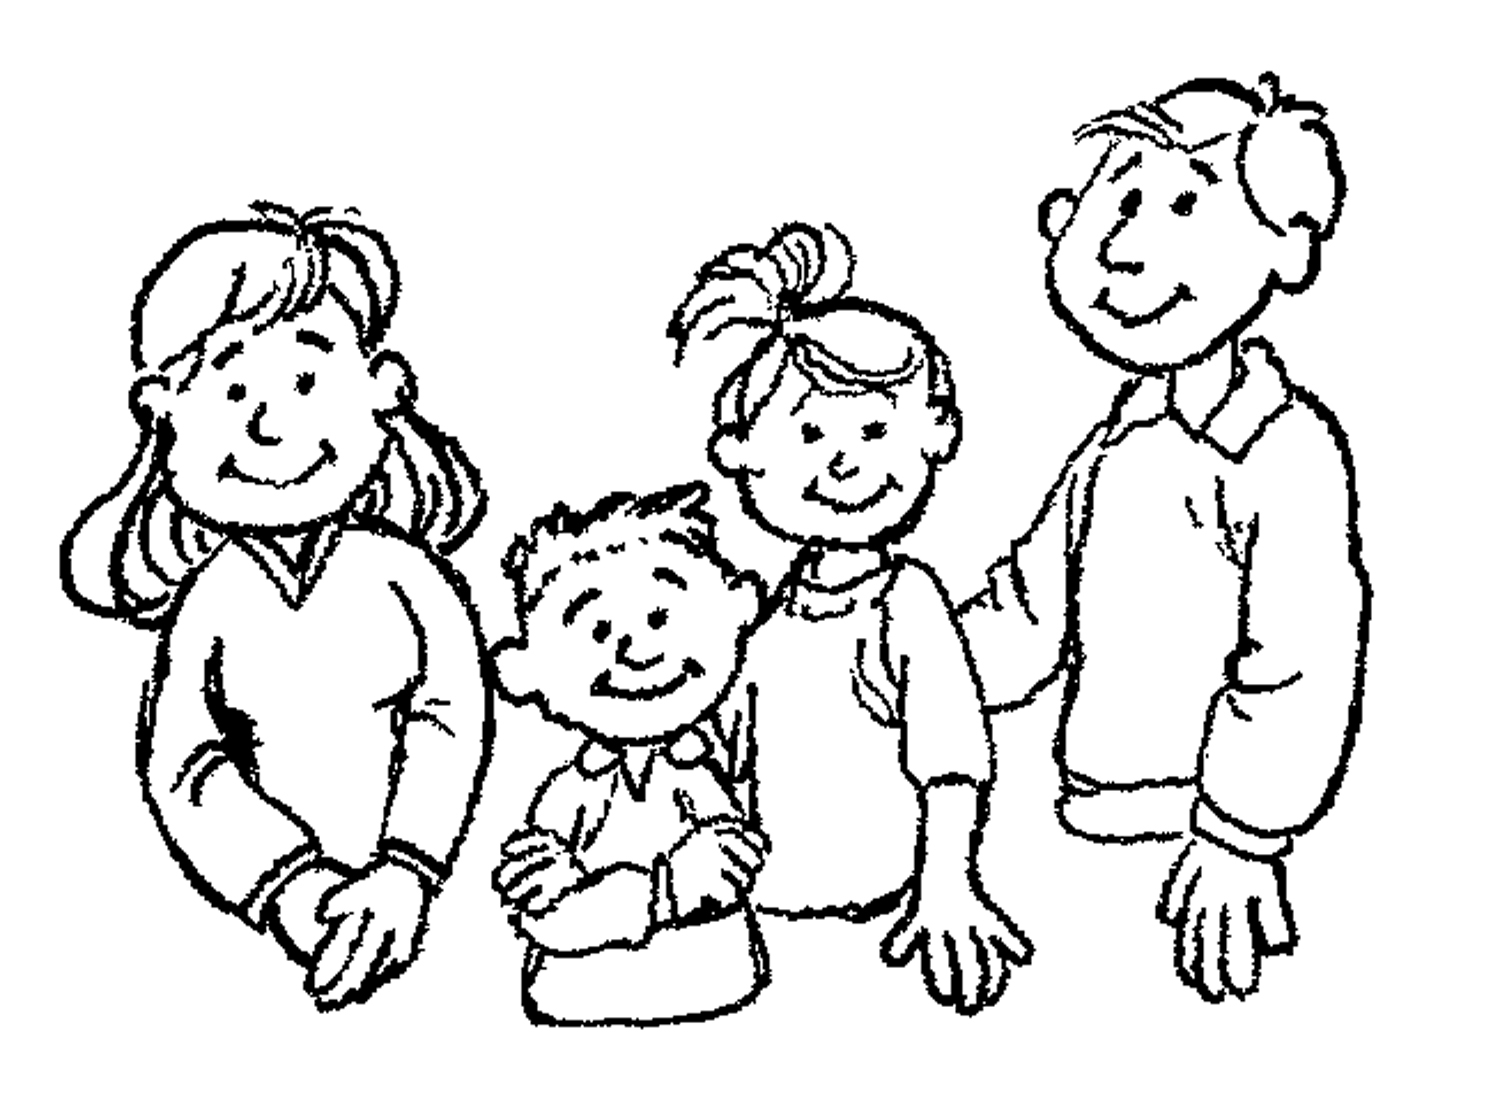 family members coloring worksheets family members coloring pages at getdrawings free download family worksheets coloring members